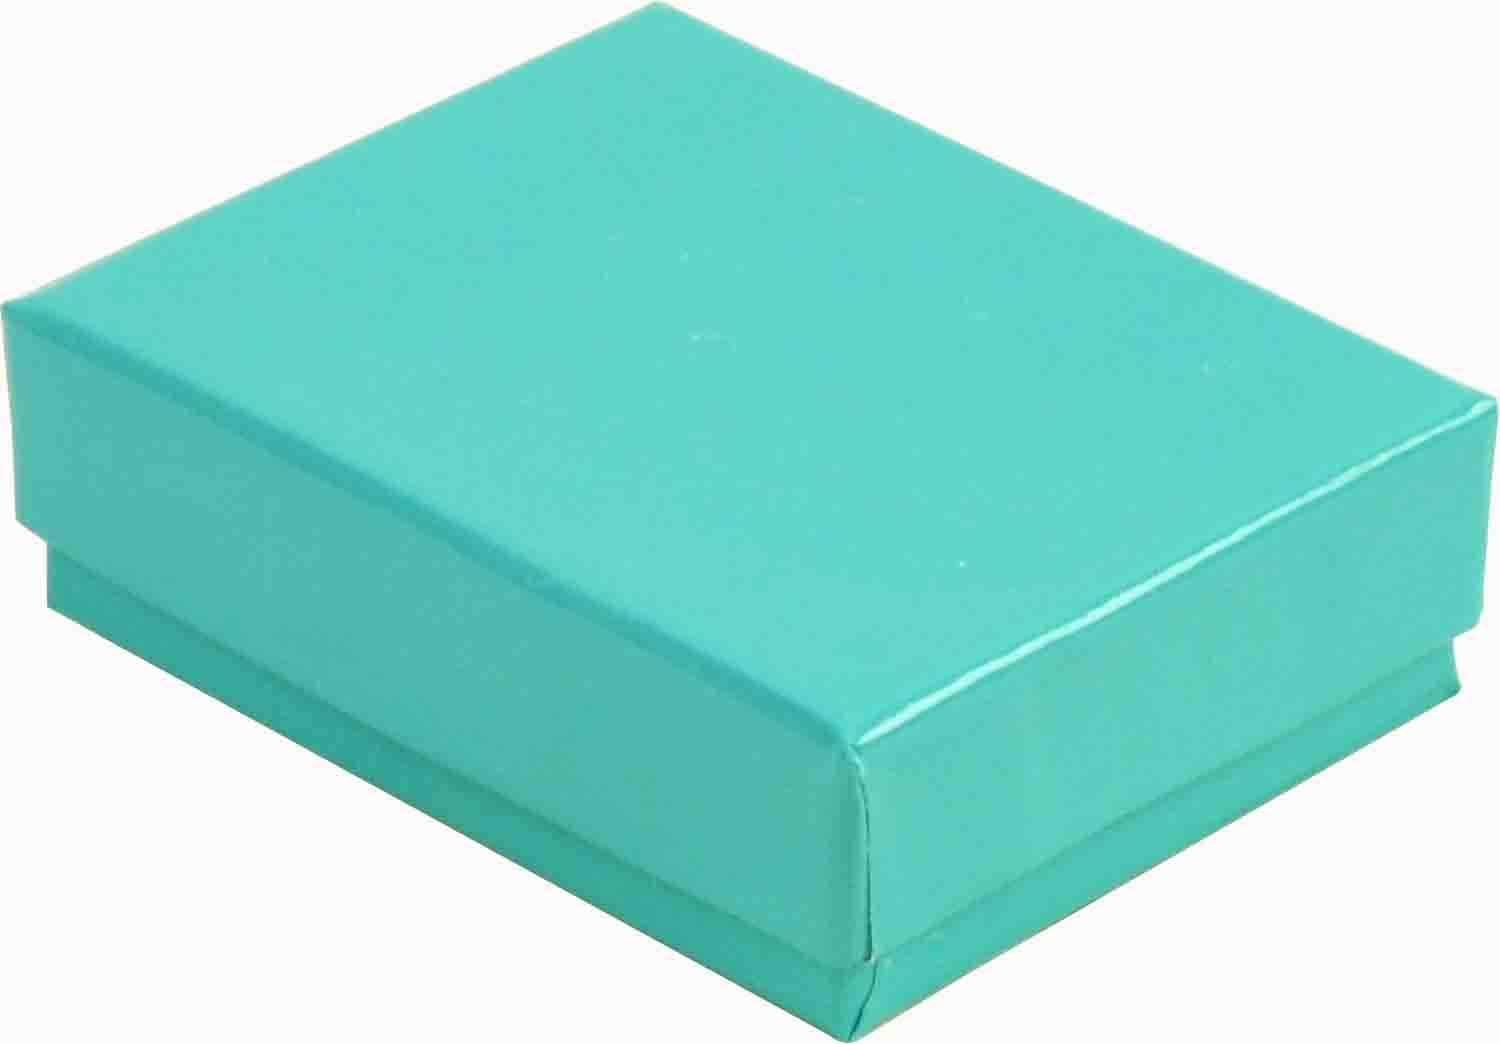 N'icePackaging - 50 Qty Teal Blue Imported Cotton Filled Cufflink Jewelry Boxes - for Large Rings/Cufflinks/Earrings/Lockets & Keepsakes - 2 5/8